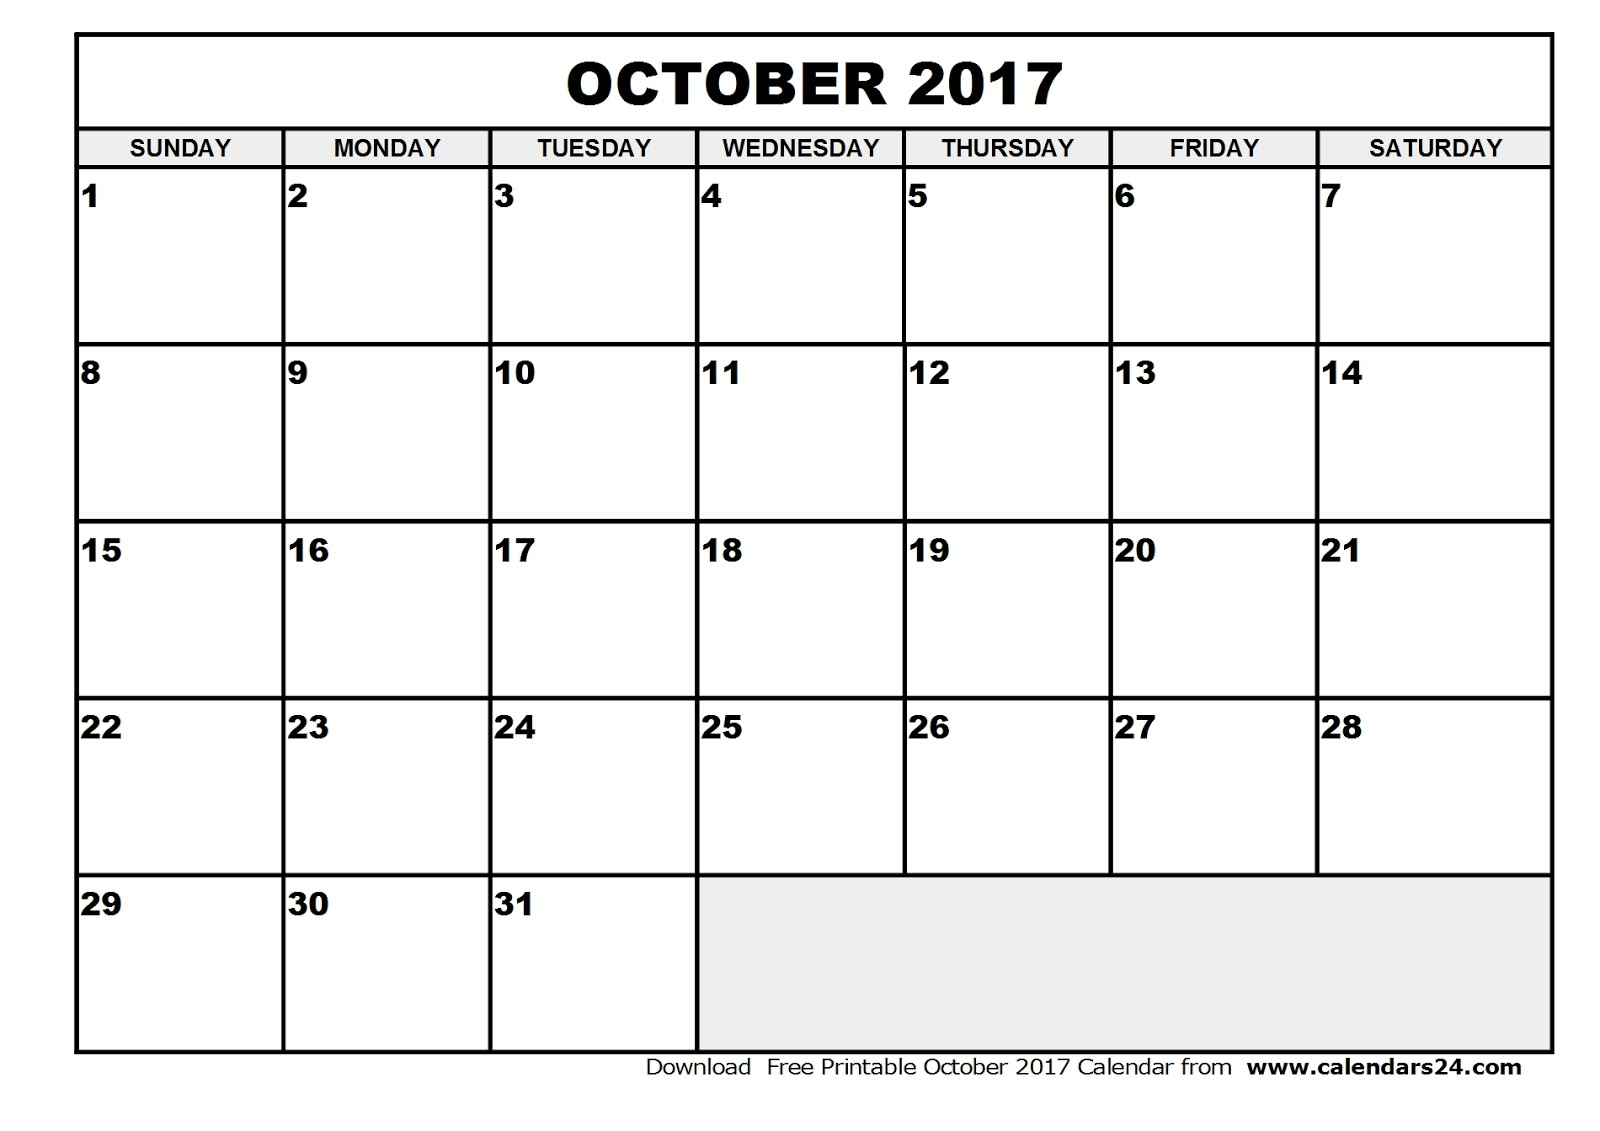 October 2017 Calendar Printable Templates